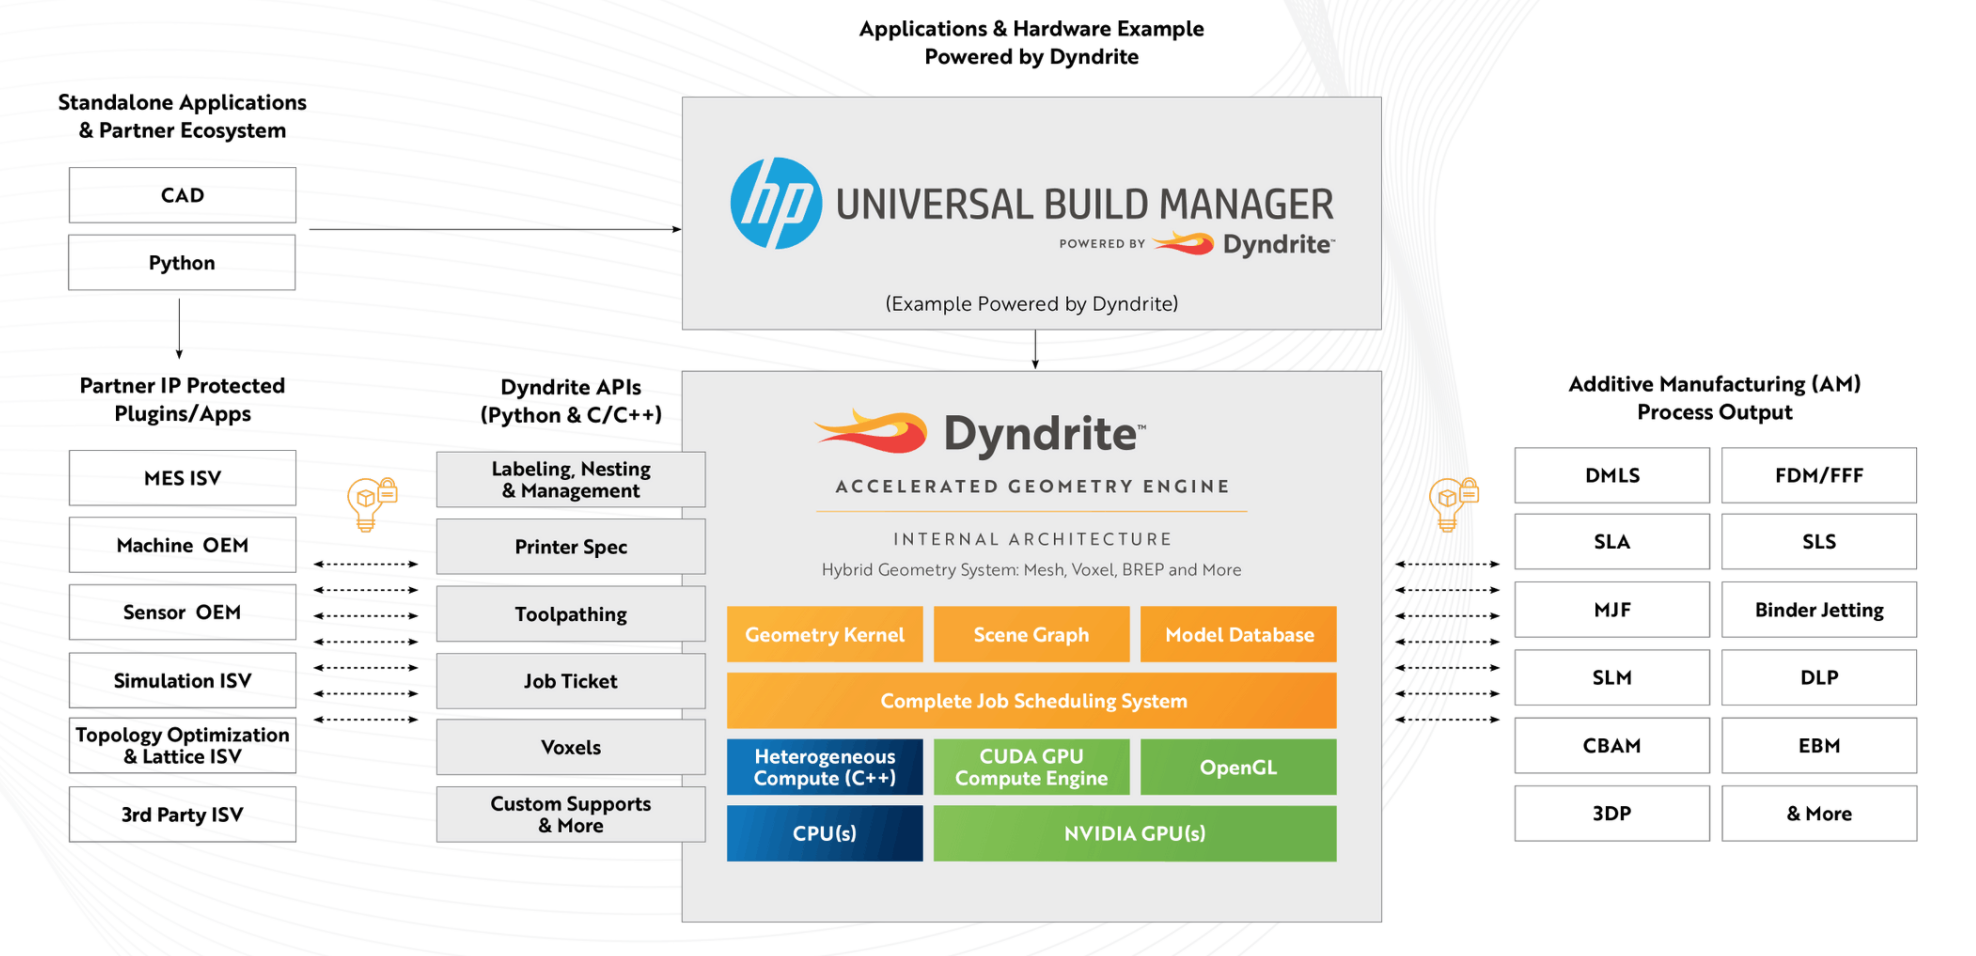 Dyndrite example HP Universal Build Manager